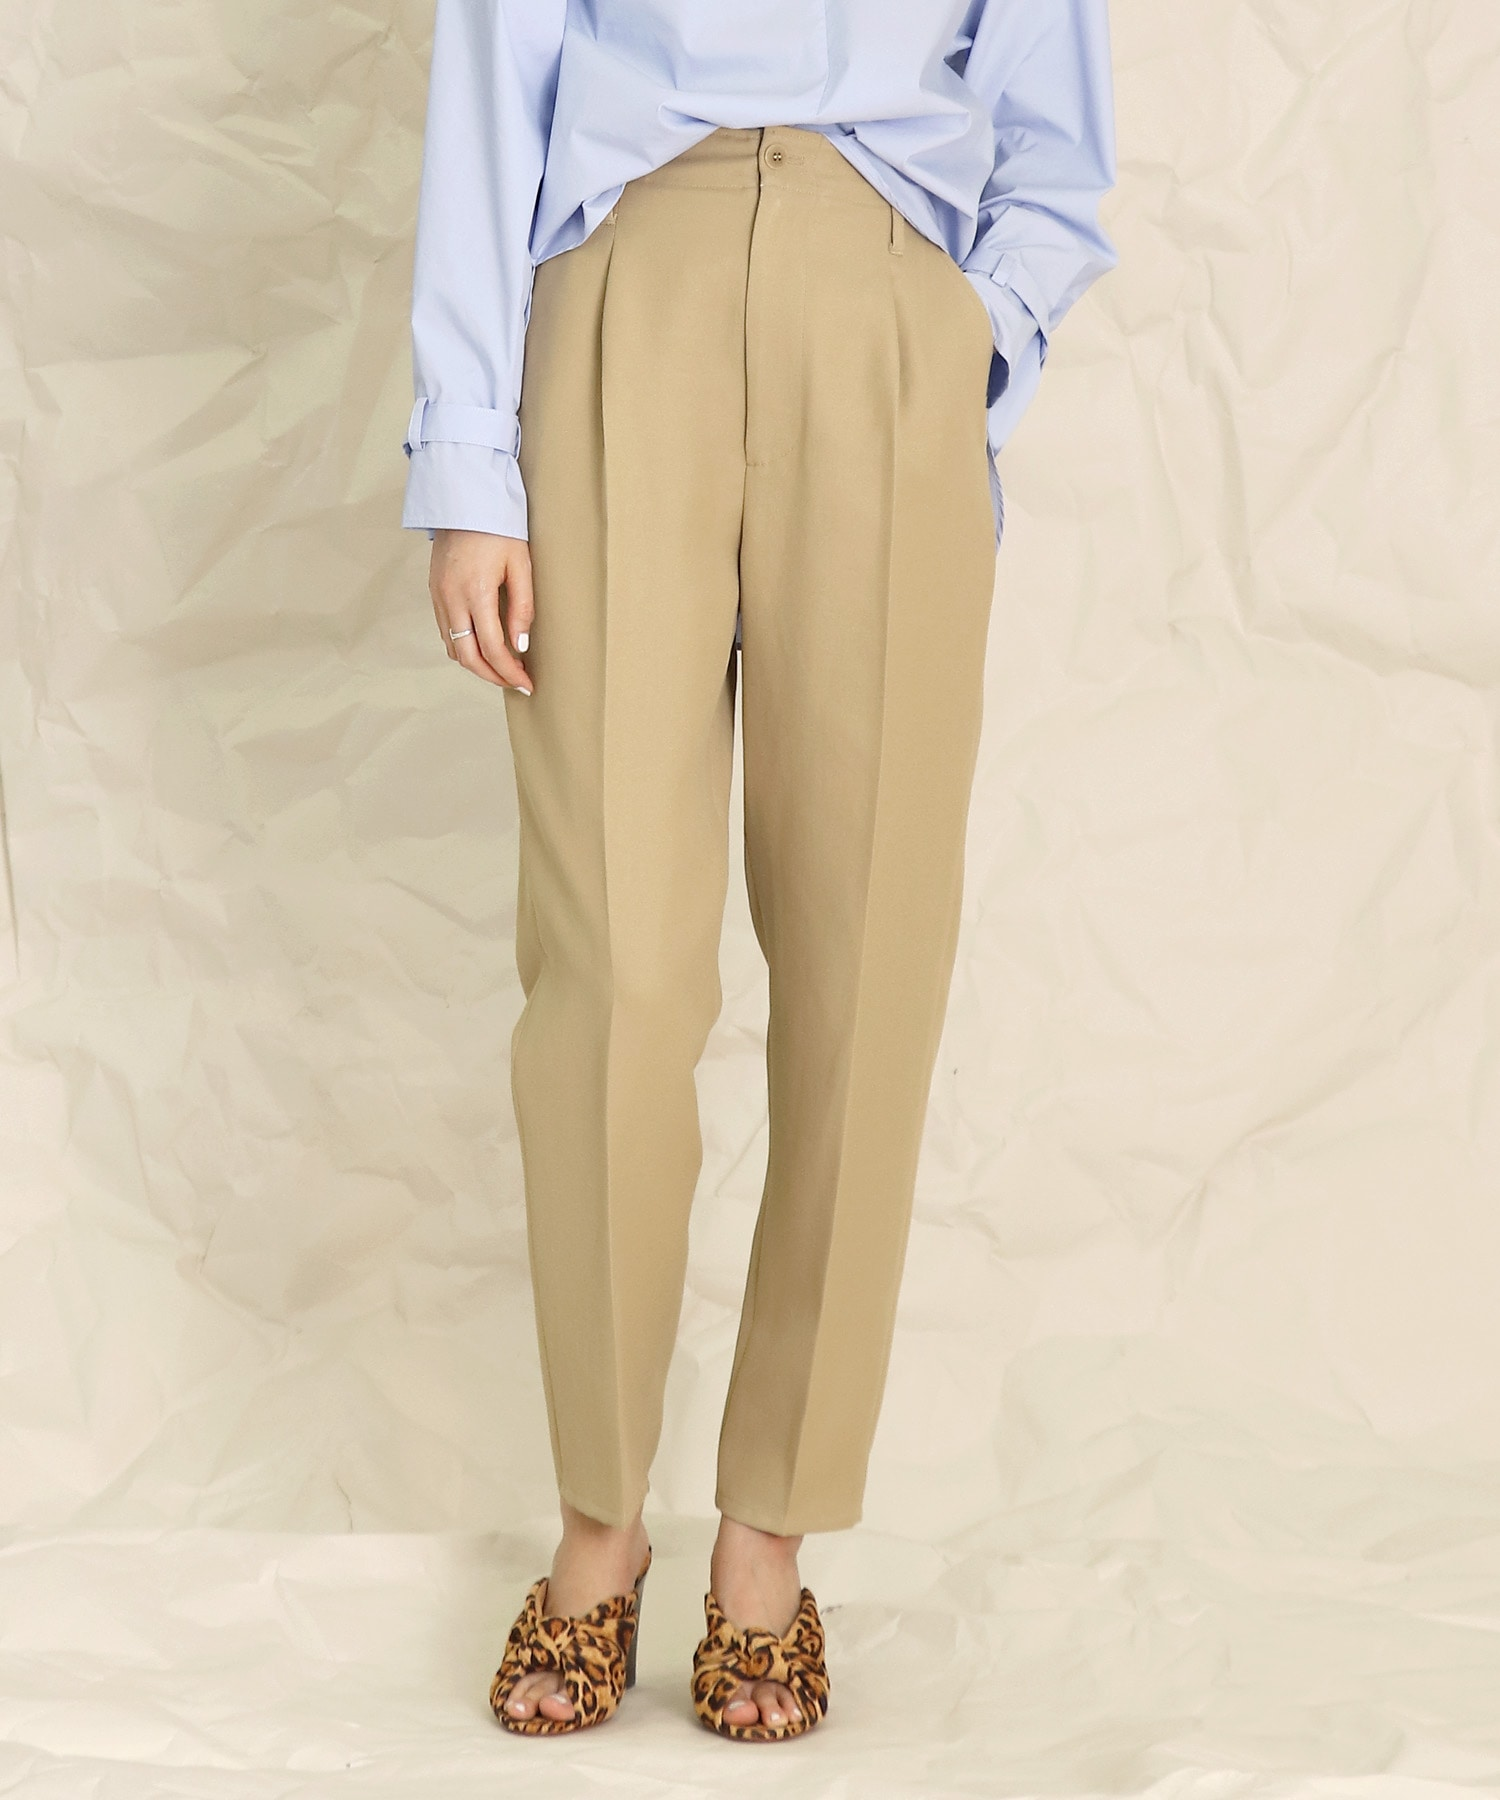 span twill tapared pants